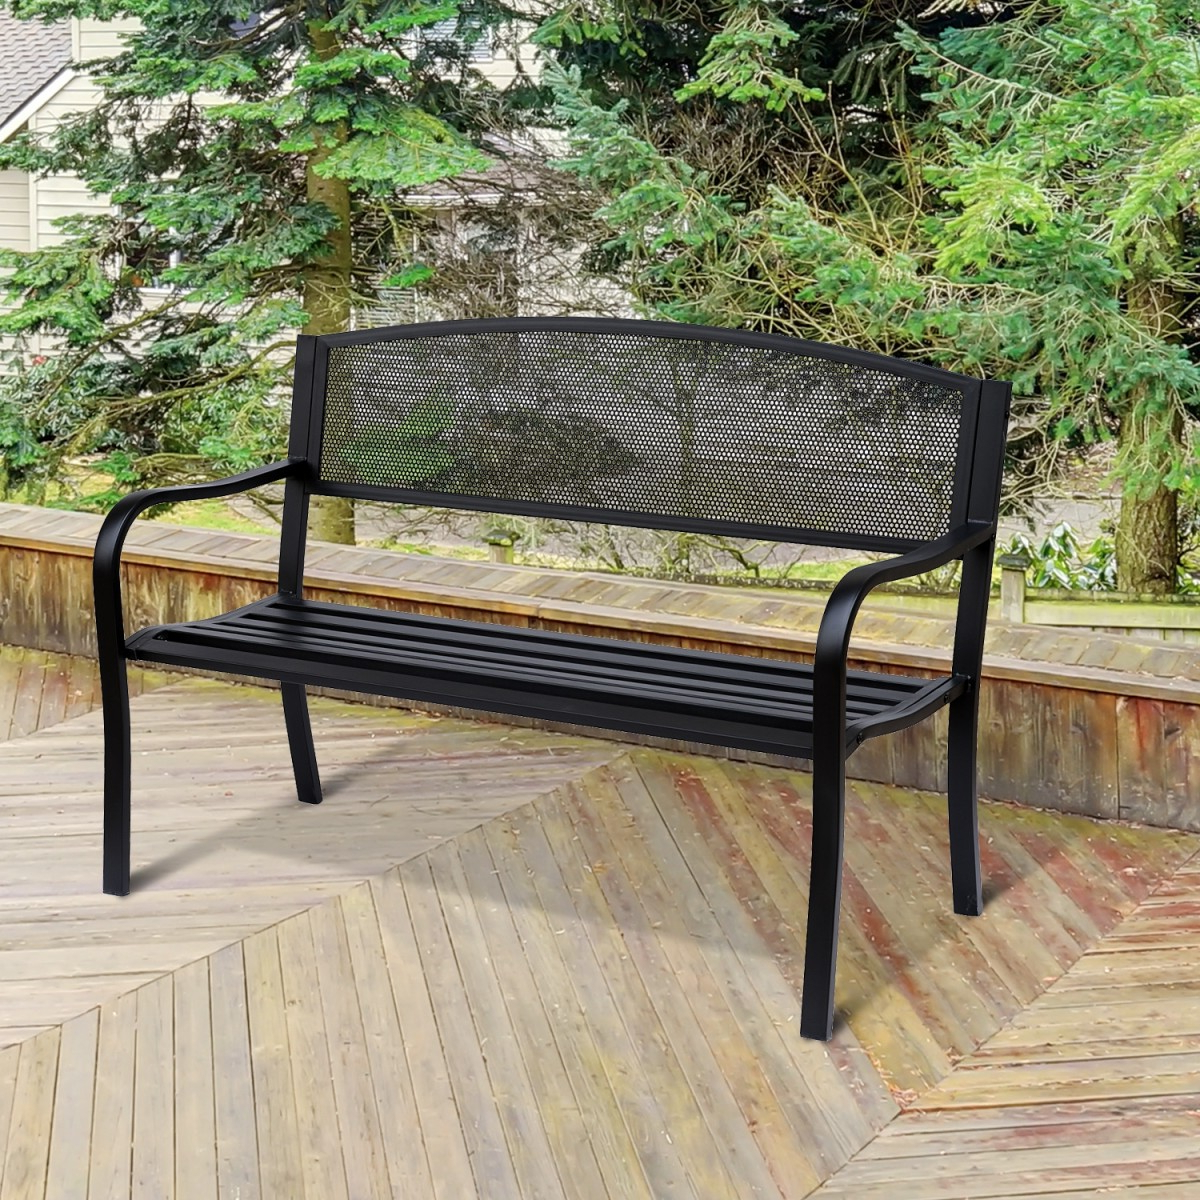 Blooming Iron Garden Benches Intended For Best And Newest 2 Seater Metal Garden Bench In Black (View 20 of 30)